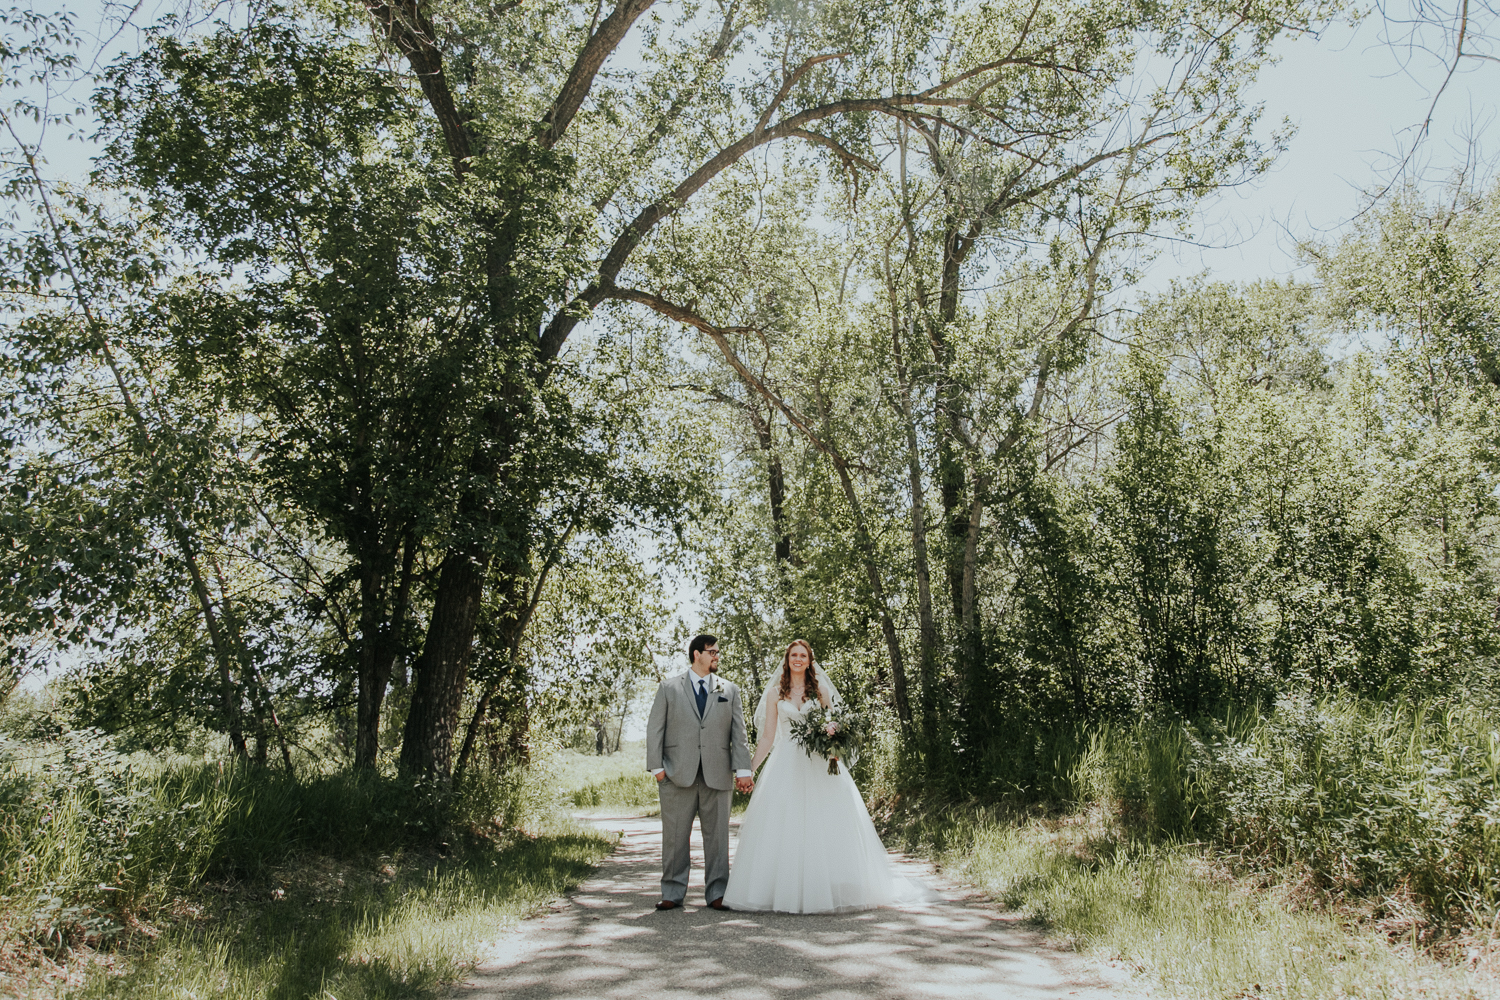 lethbridge-wedding-photographer-love-and-be-loved-photography-dan-tynnea-picture-image-photo-58.jpg